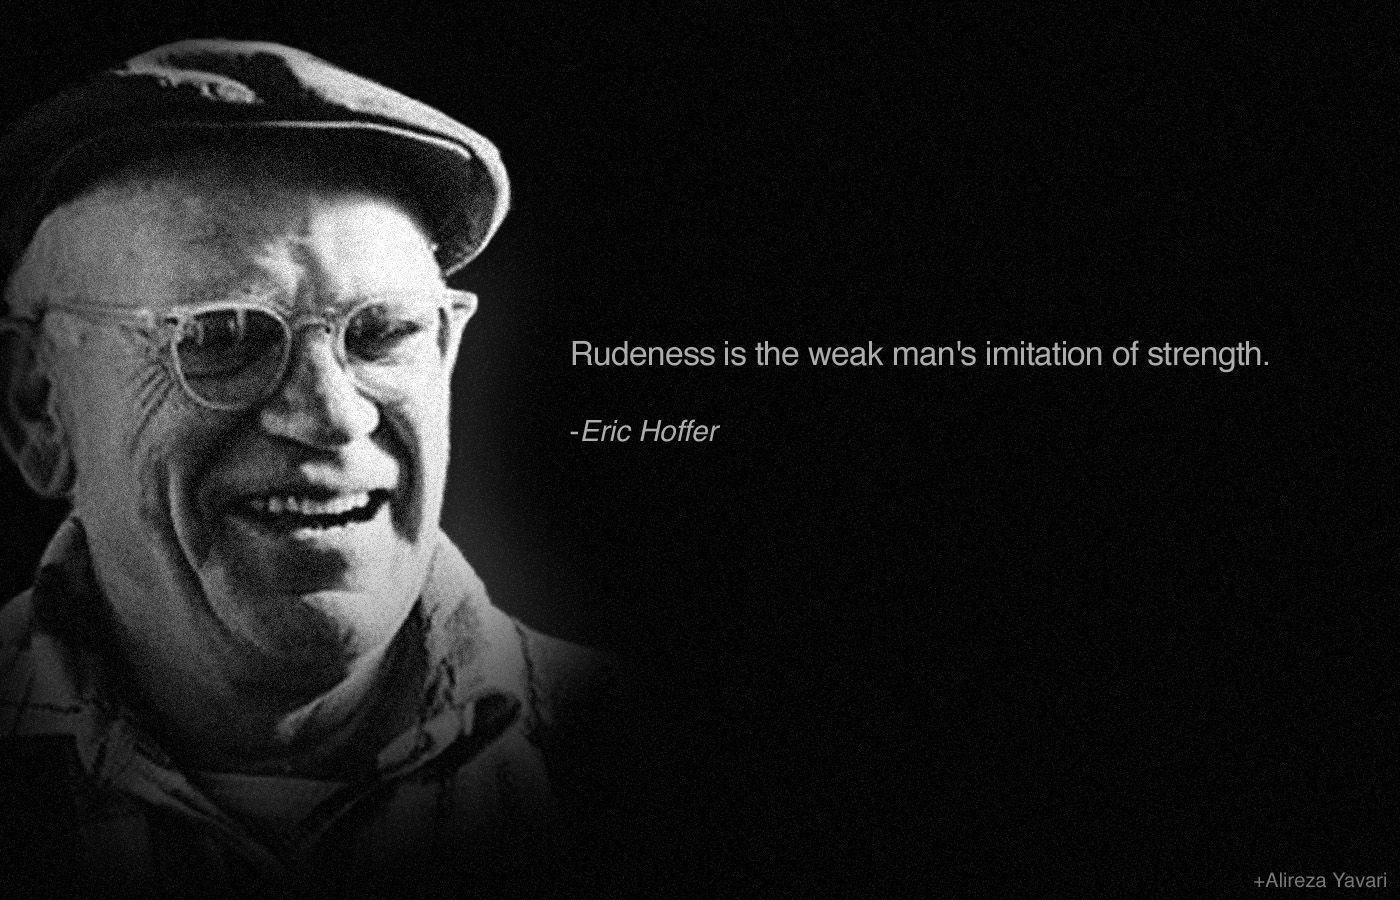 eric hoffer quote on weakness and strength of a man amazing eric hoffer quote on weakness and strength of a man amazing quotes wisdom the o jays and quotes